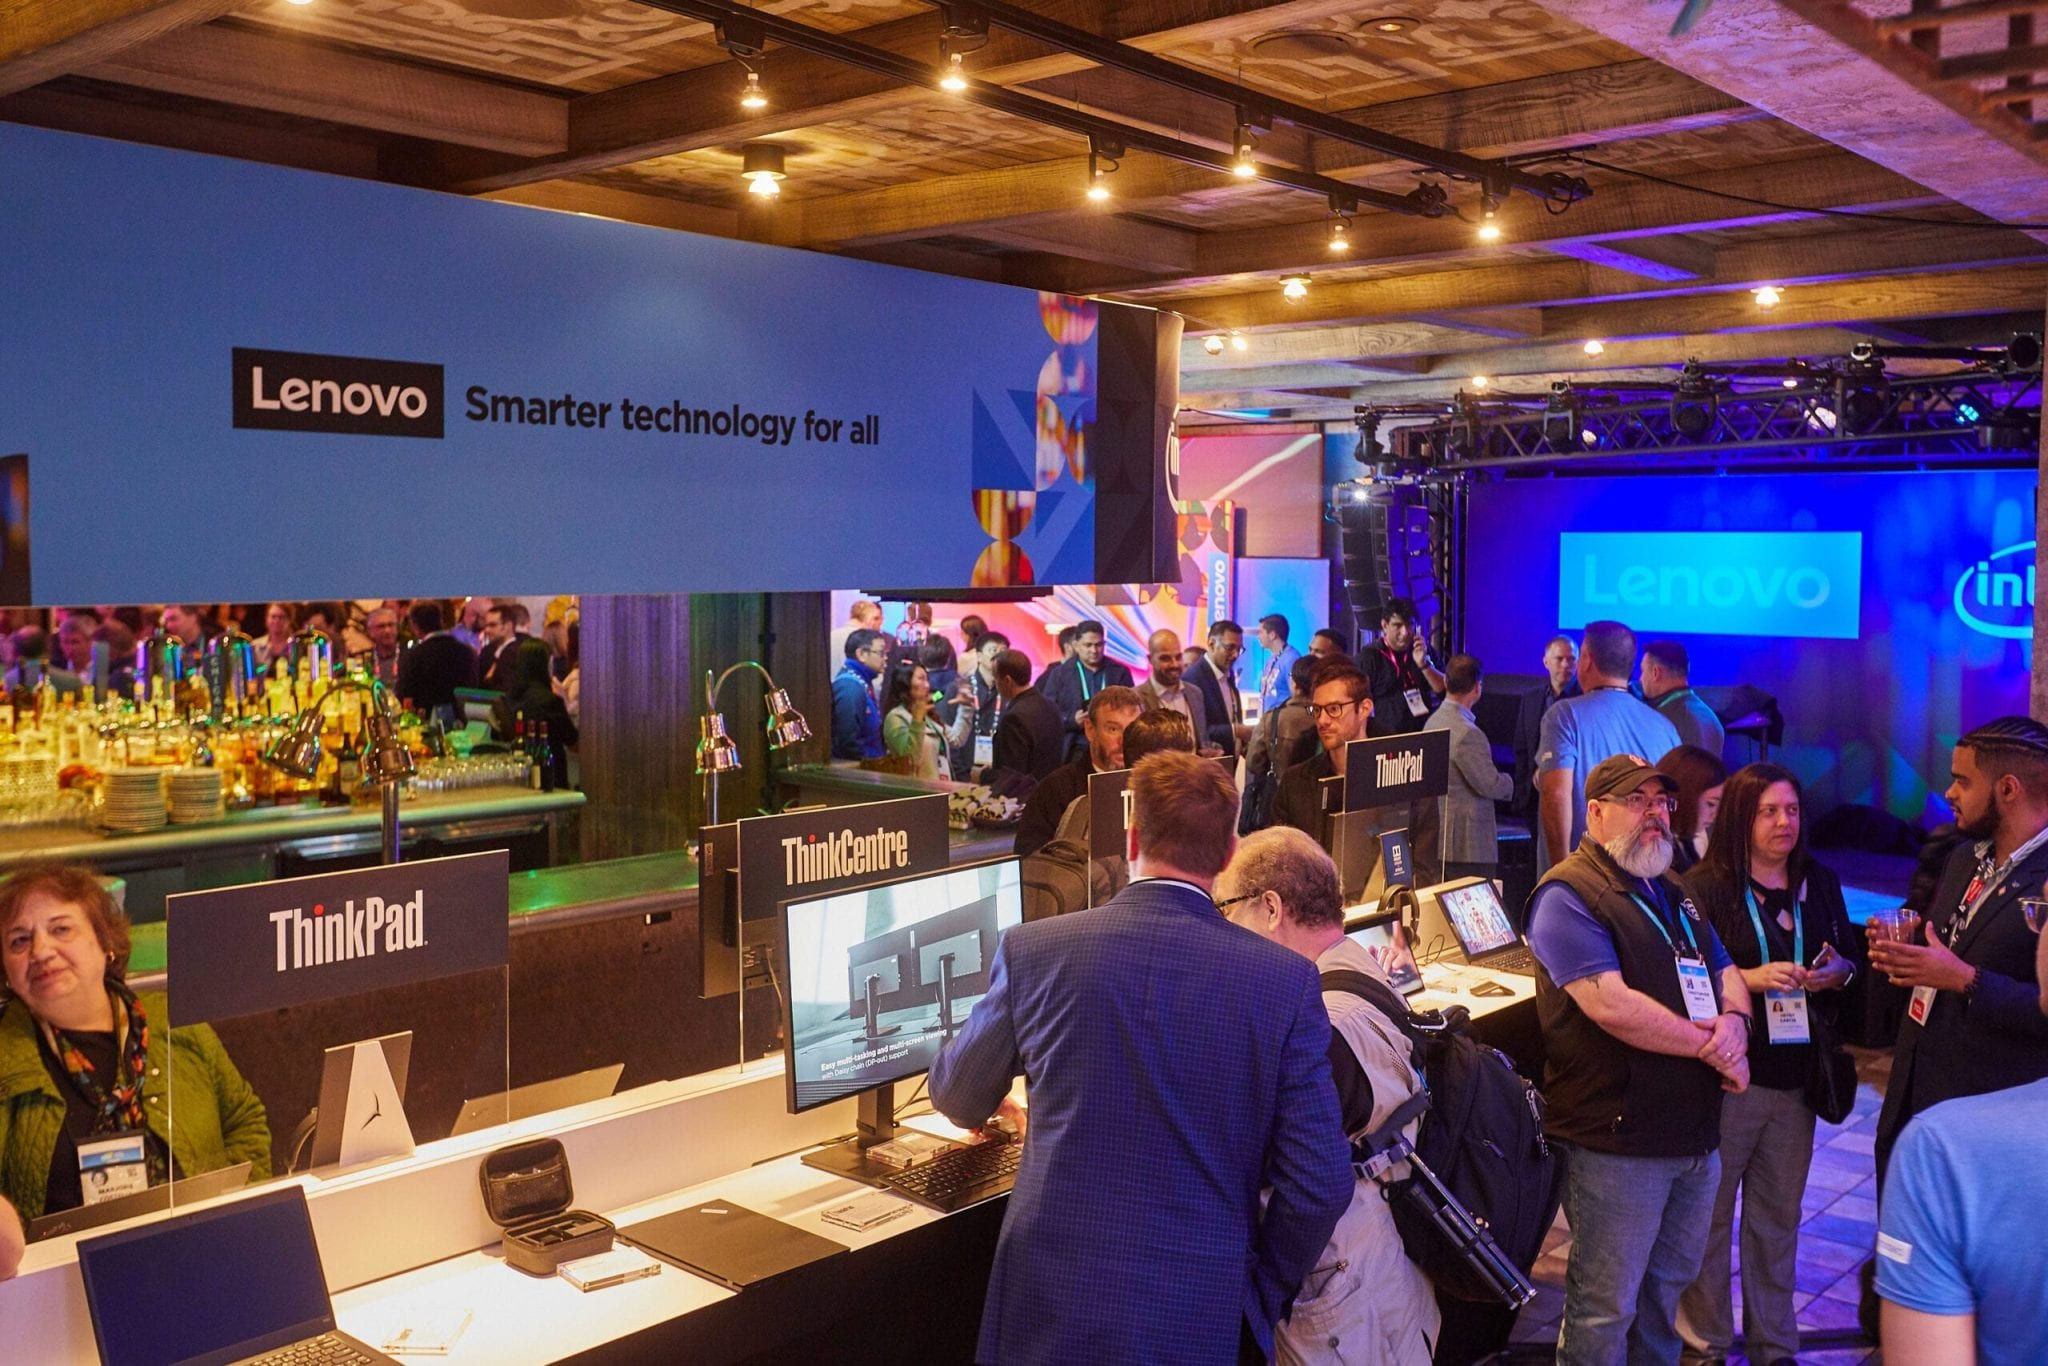 Lenovo booth at CES 2020